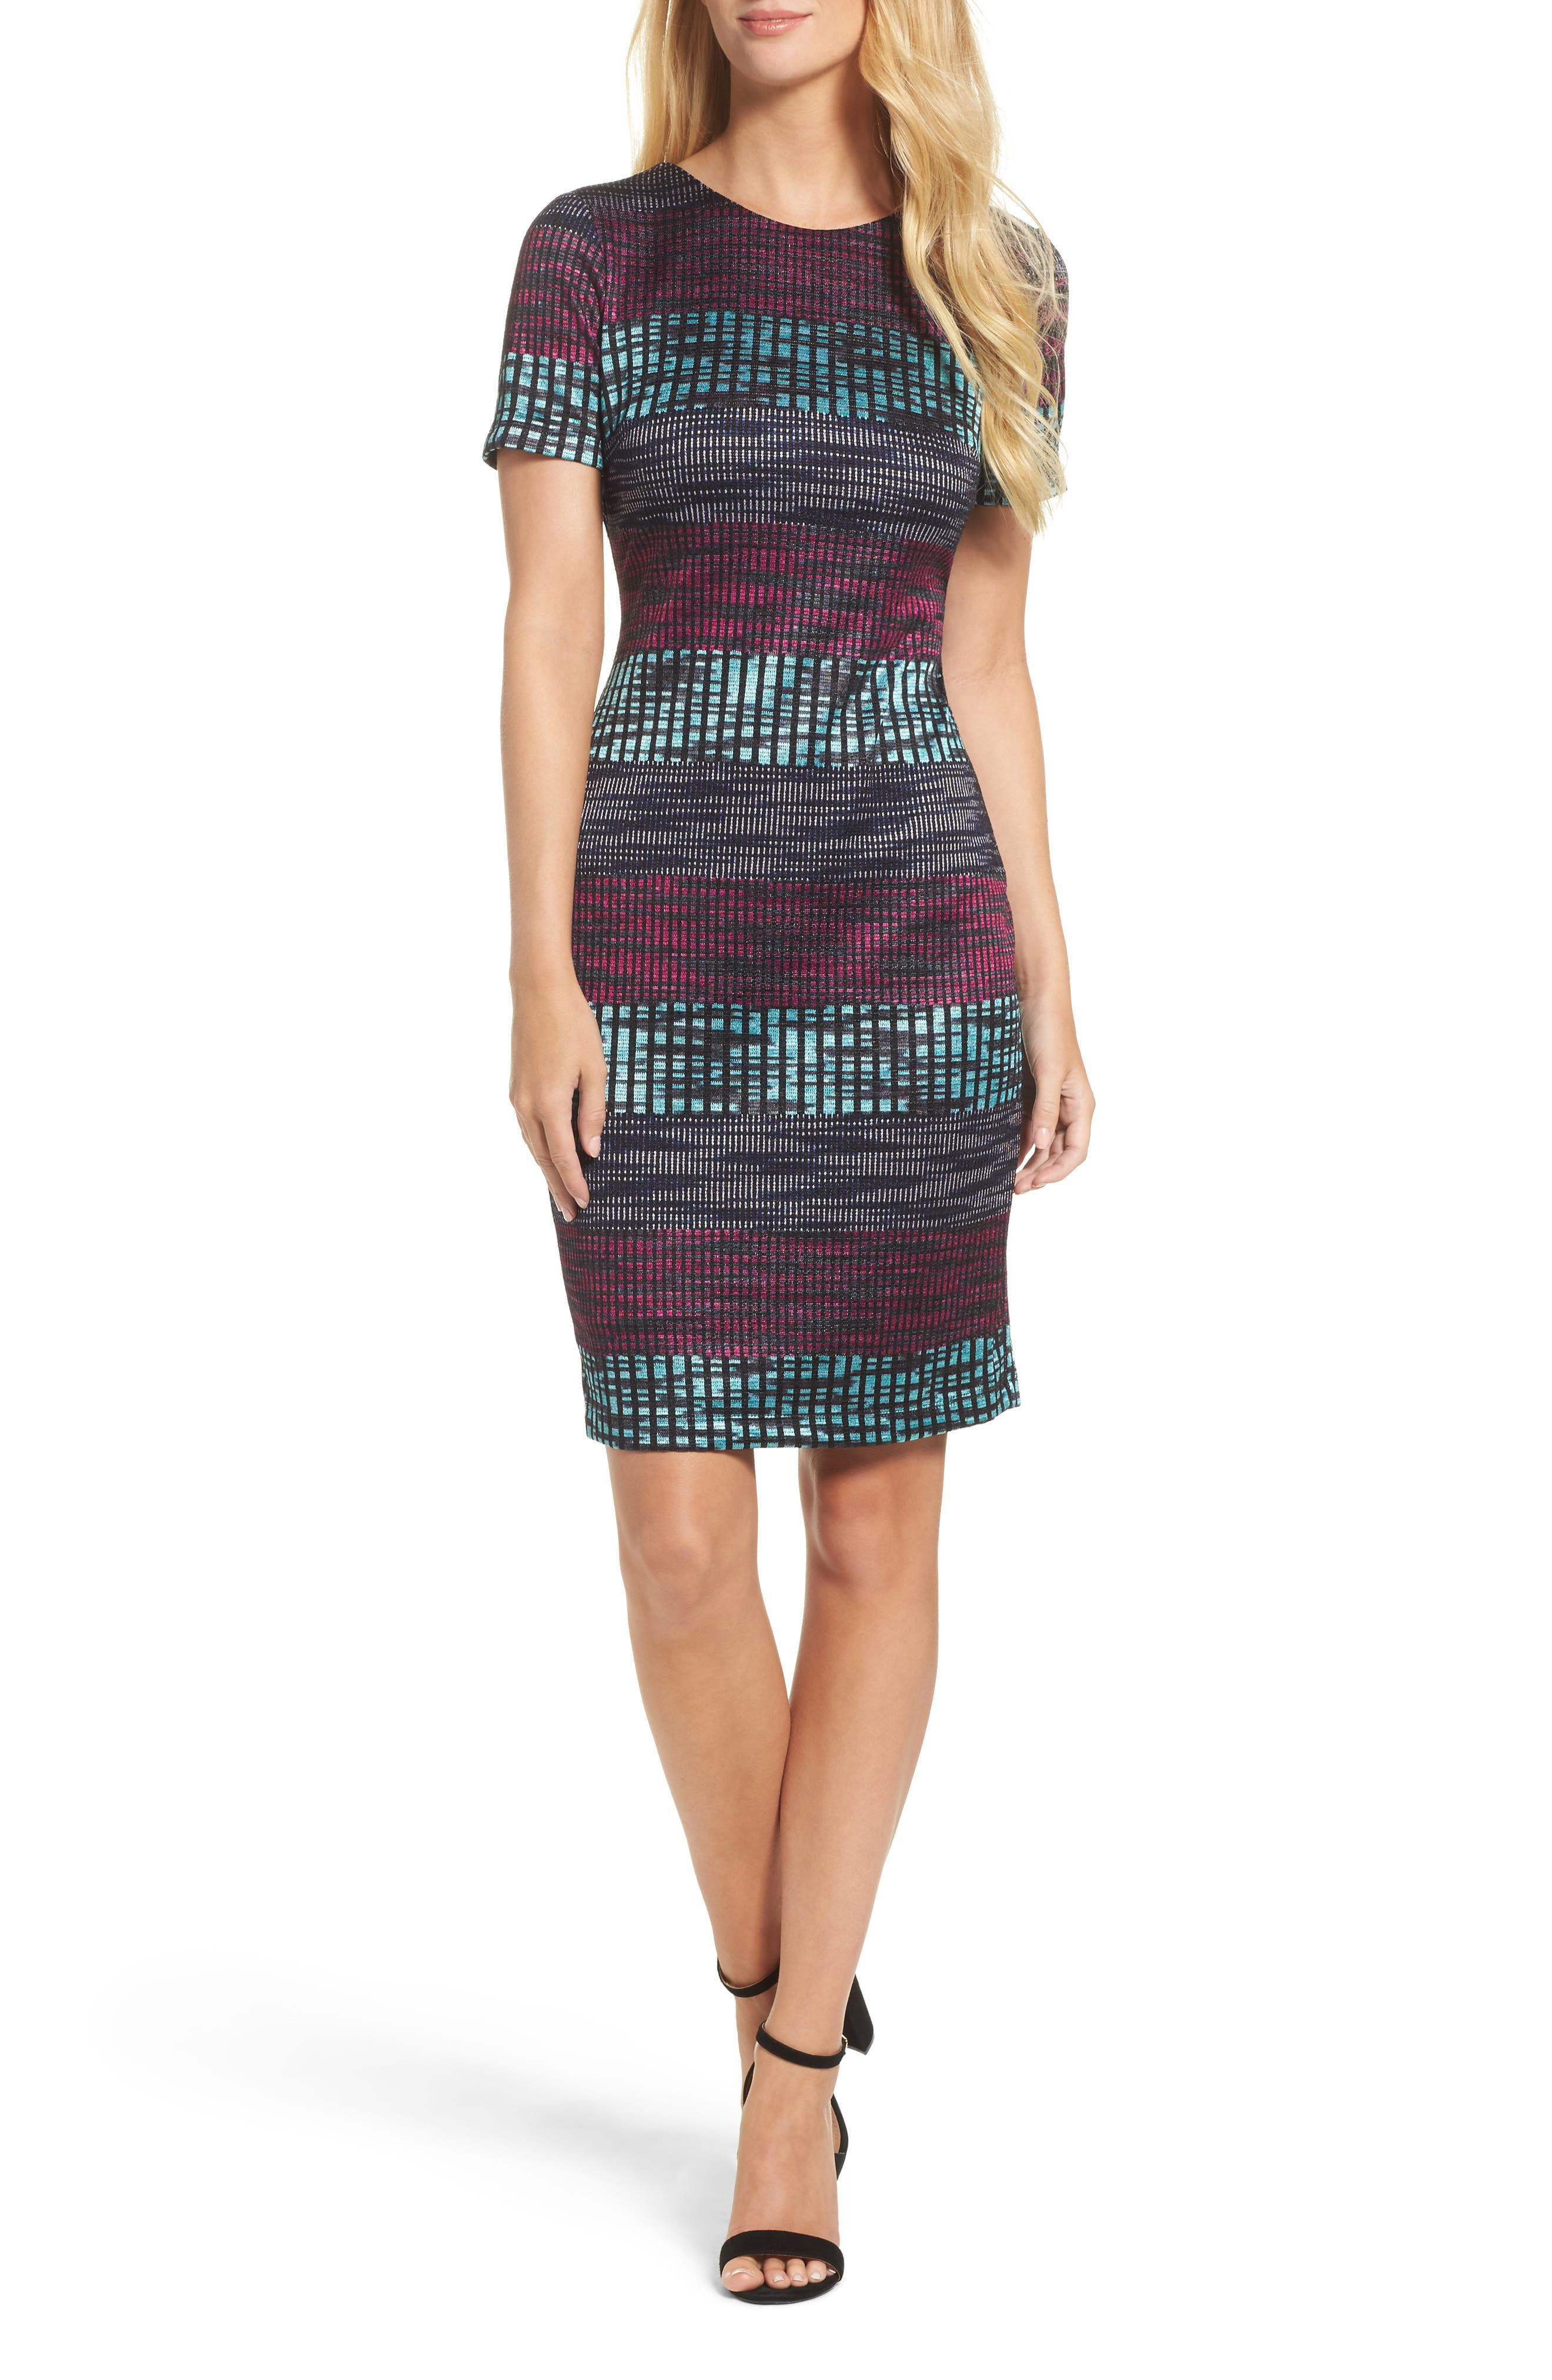 Ombré Knit Sheath Dress,                         Main,                         color, Raspberry/ Navy/ Aqua